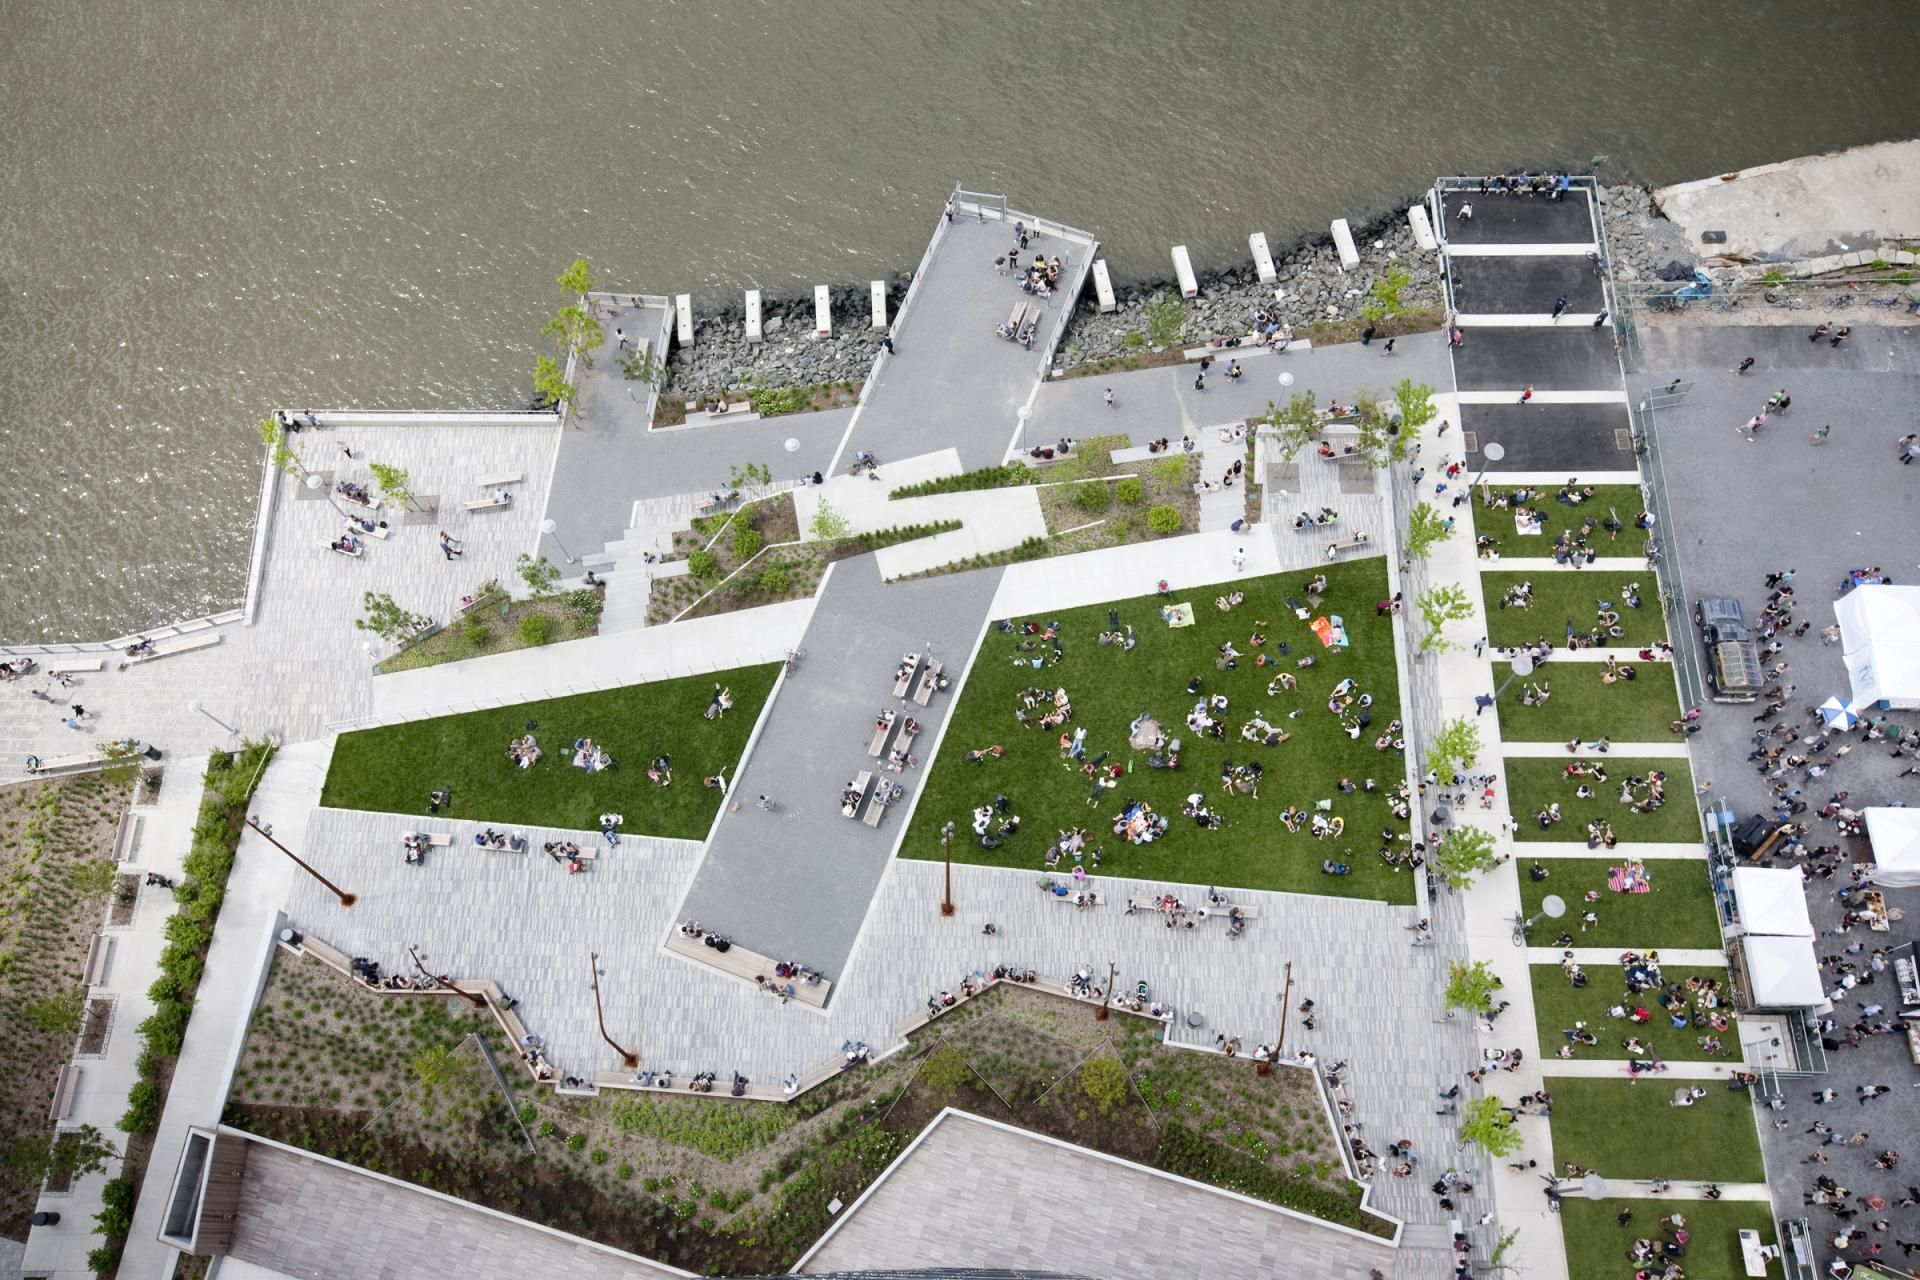 The Edge Park By W Architecture In Brooklyn Ny Landscape Architecture Park Landscape Design Landscape Architecture